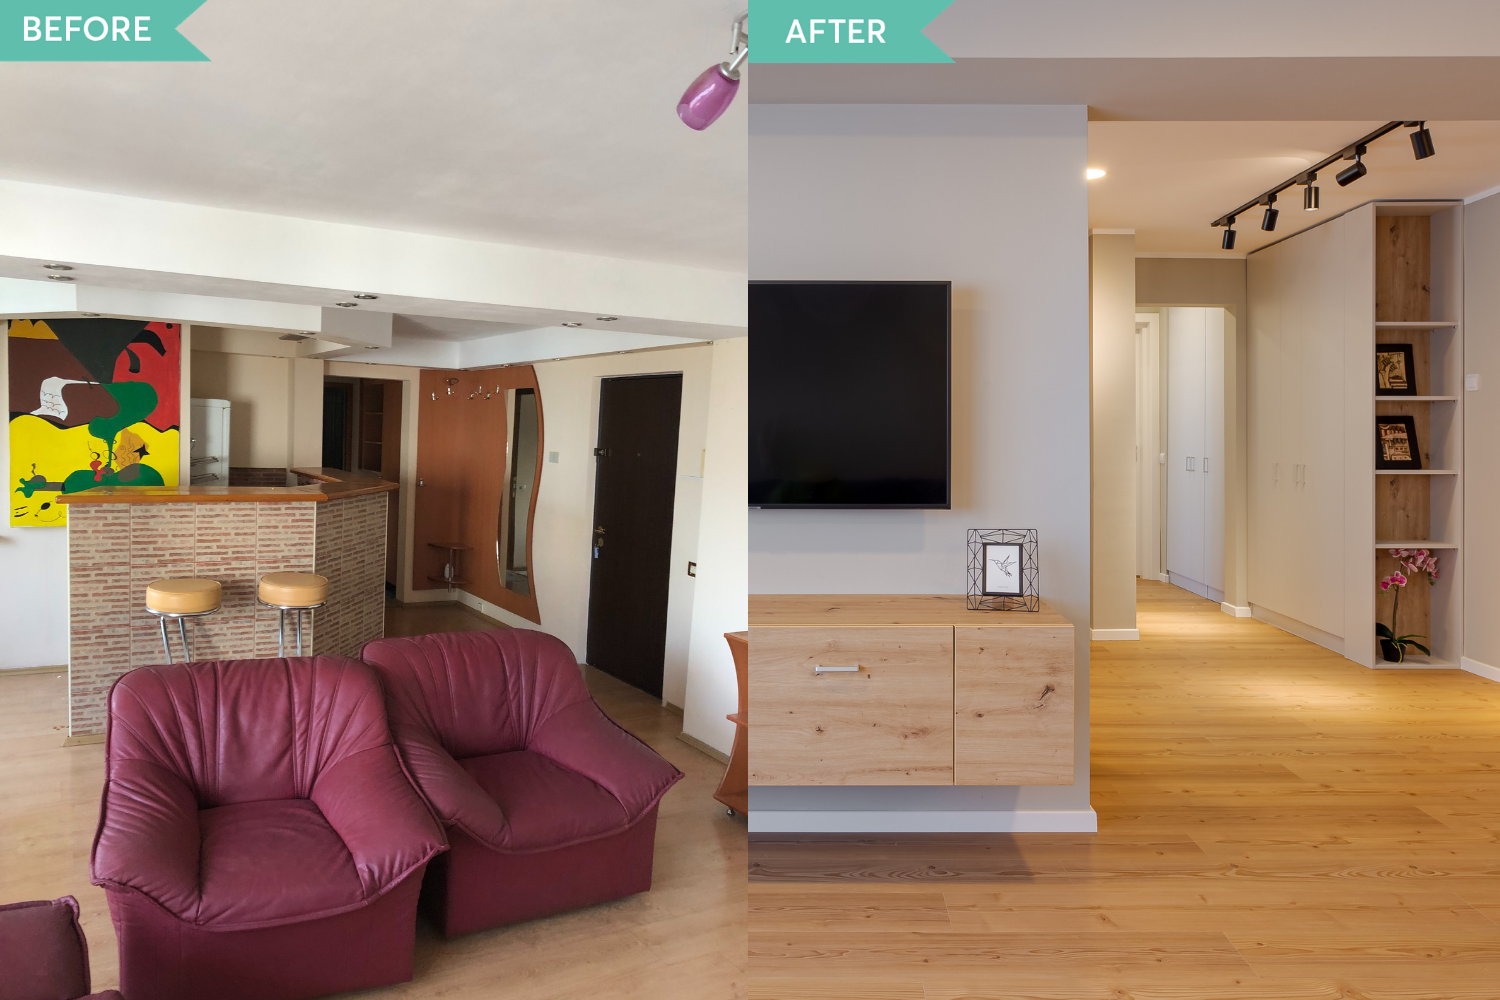 Renovare apartament Aviatiei - before and after _ Arh. Cristiana Zgripcea (8)